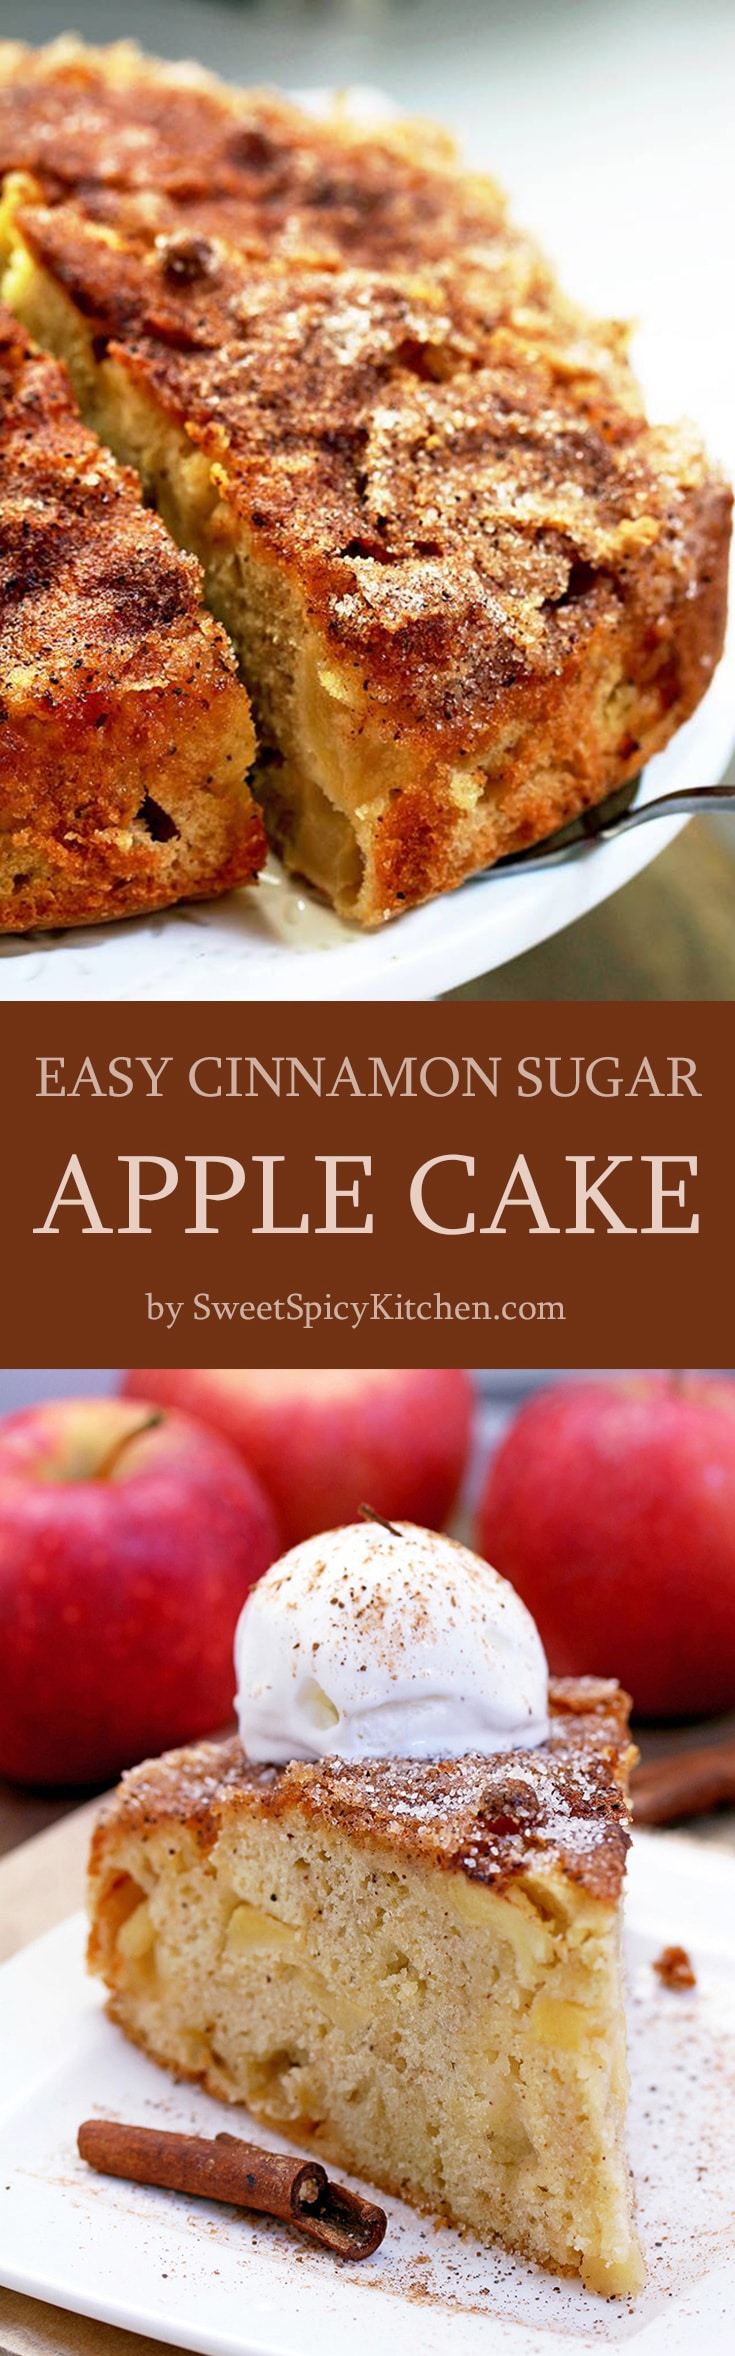 Easy Cinnamon Sugar Apple Cake – a soft cake filled with juicy apples, topped with cinnamon and sugar. This is a real fall treat